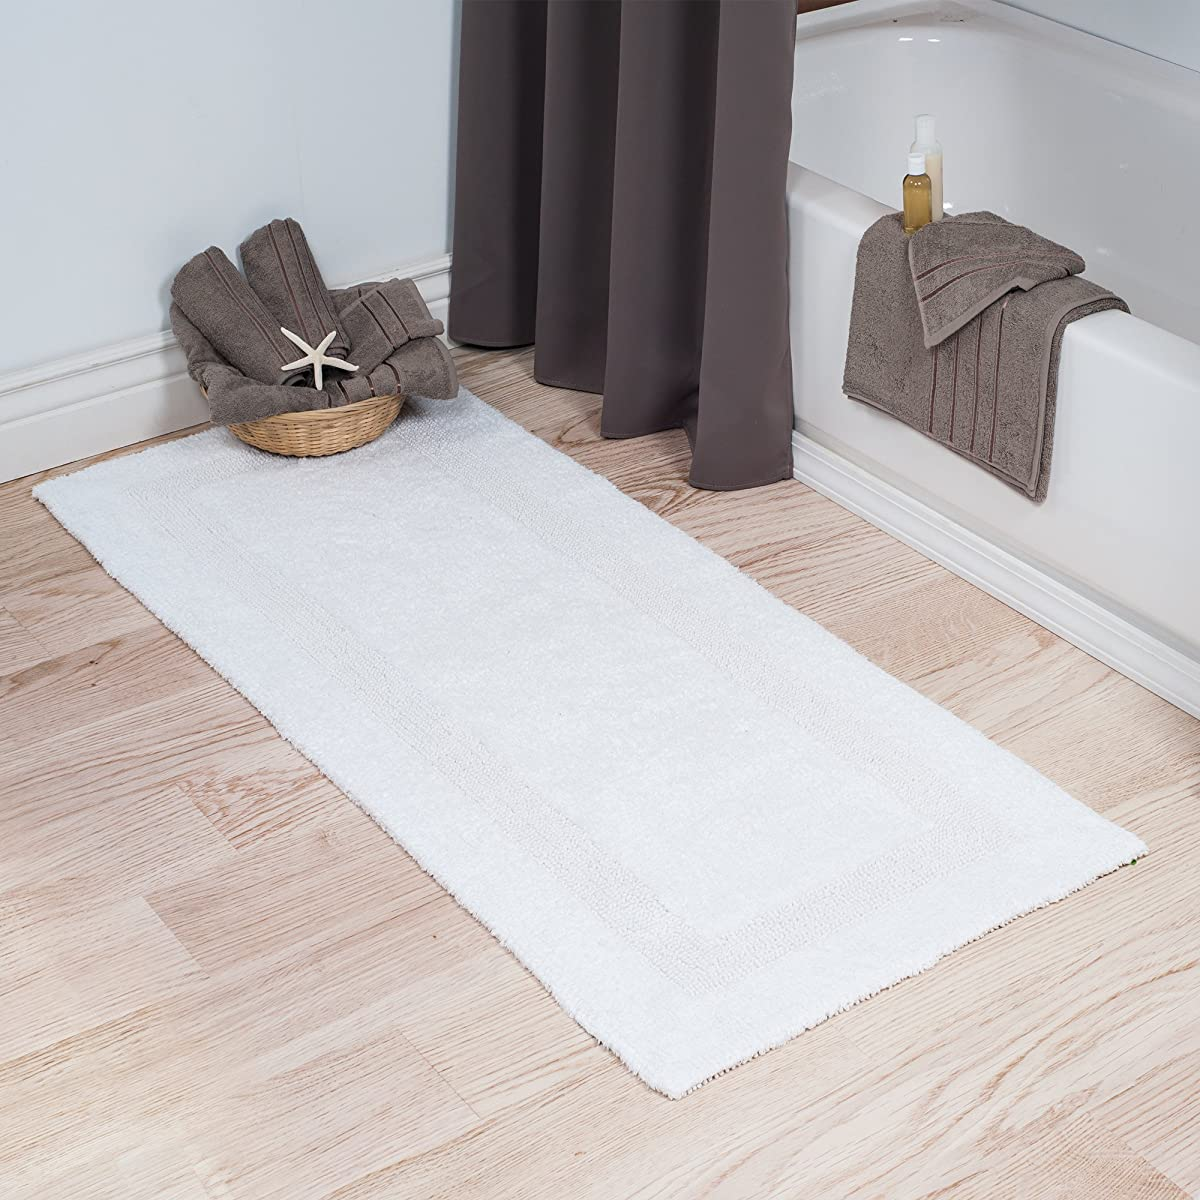 Cotton Bath Mat- Plush 100 Percent Cotton 24x60 Long Bathroom Runner- Reversible, Soft, Absorbent, and Machine Washable Rug by Lavish Home (White)